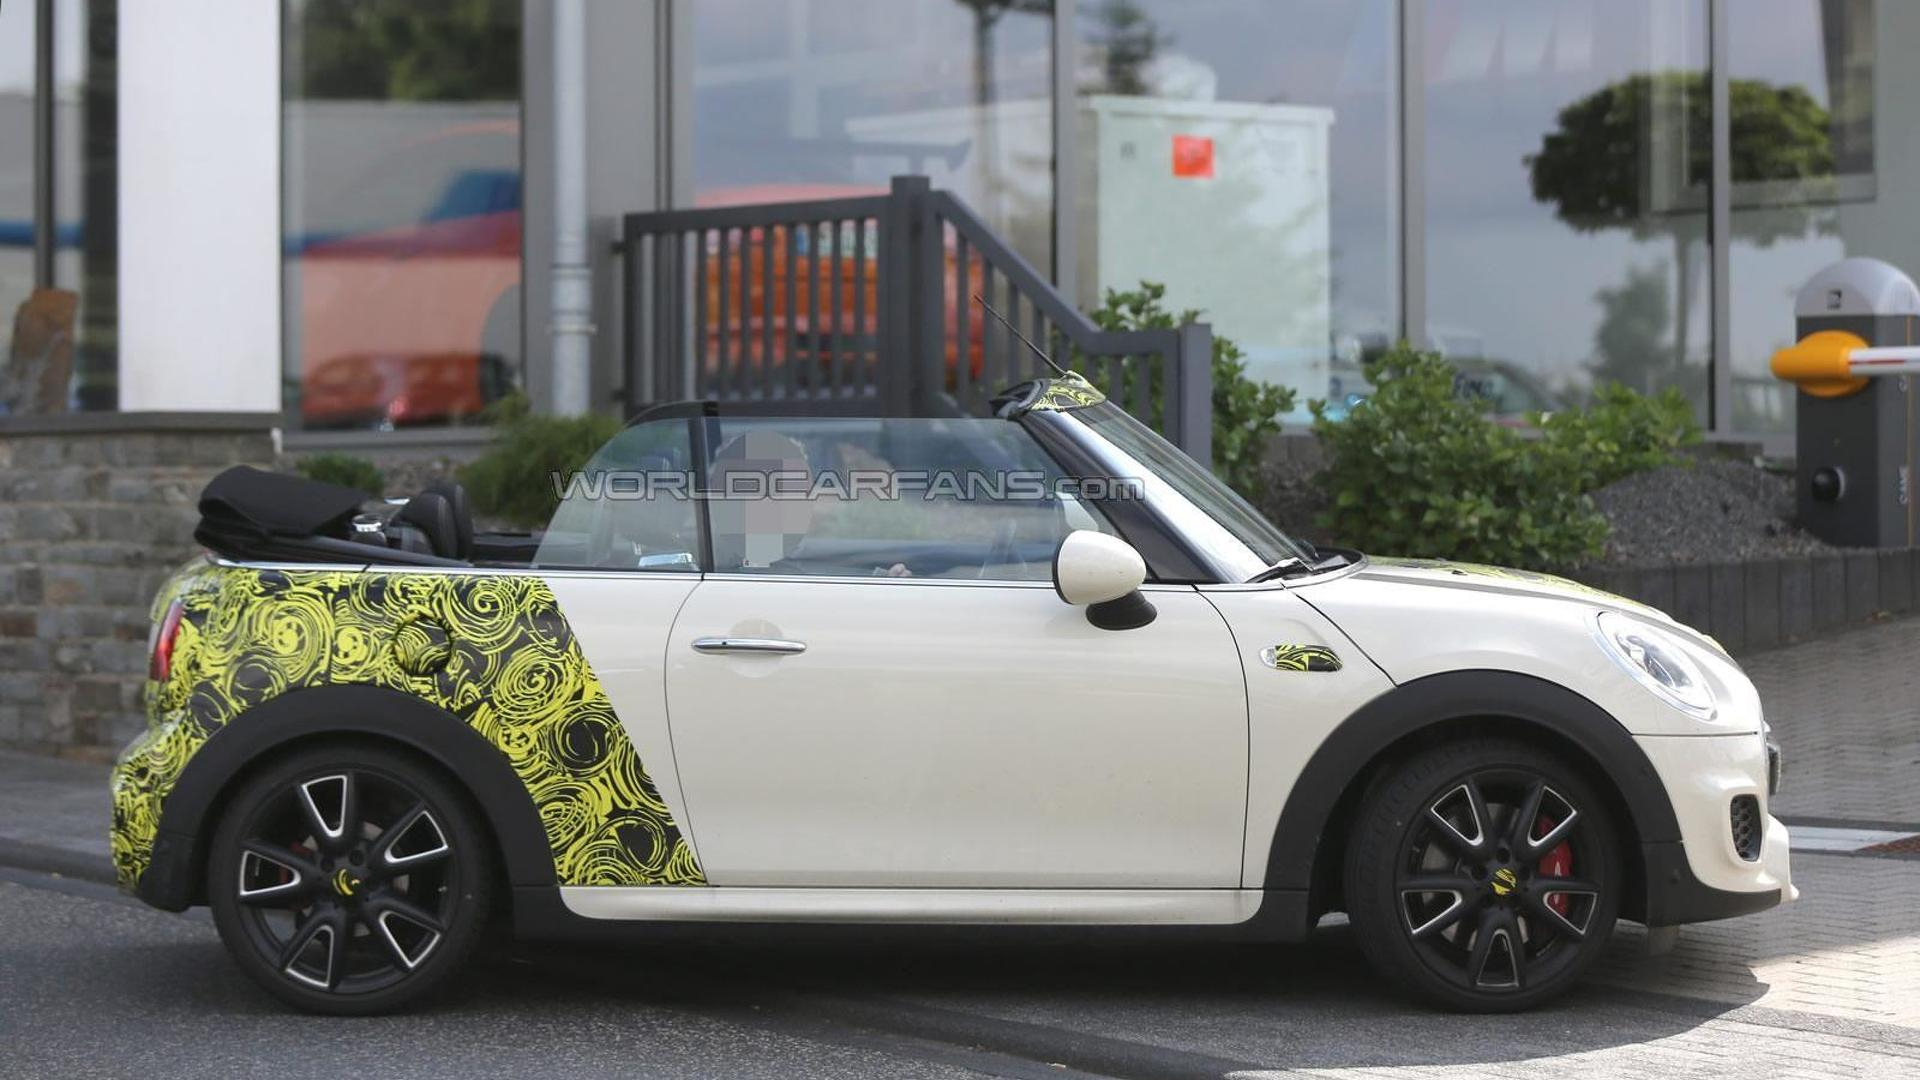 2016 mini cooper s cabrio spied with the top down 23 photos. Black Bedroom Furniture Sets. Home Design Ideas